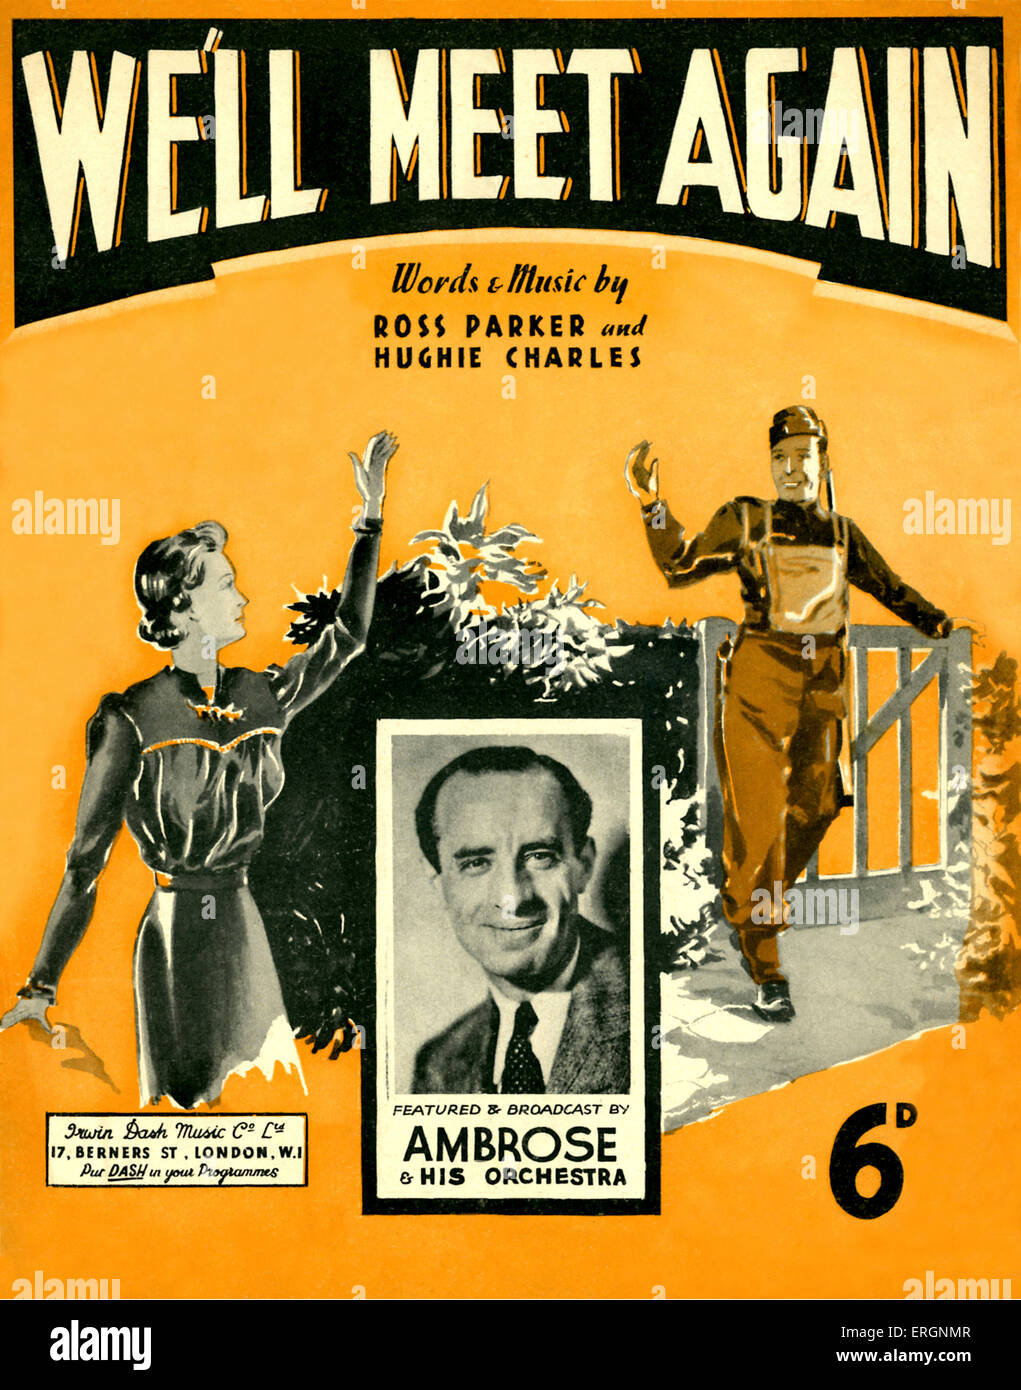 We'll Meet Again, (score cover) - words and music by Ross Parker and Hughie Charles. Featured and broadcast - Stock Image